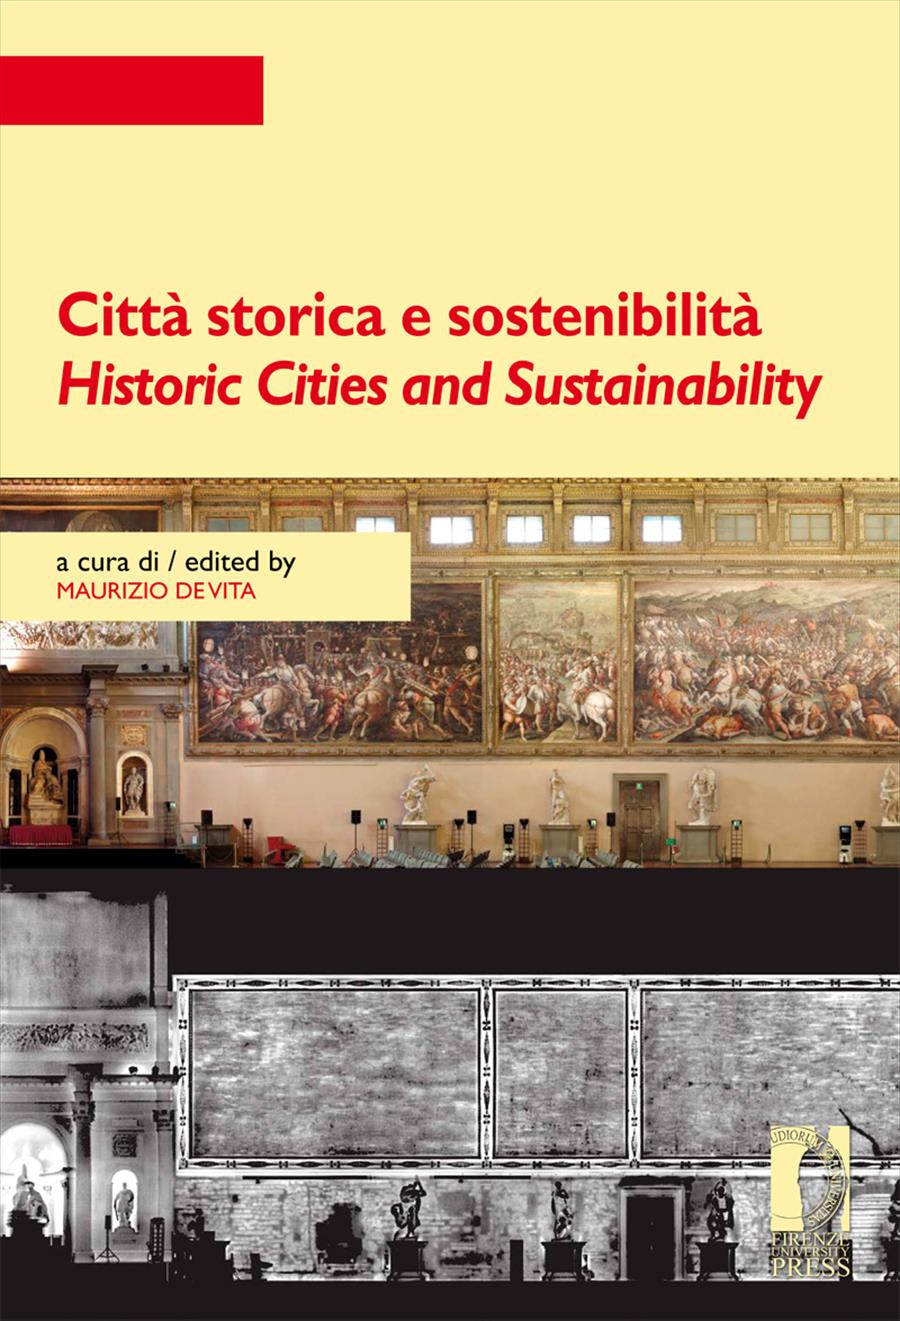 Città storica e sostenibilità / Historic Cities and Sustainability